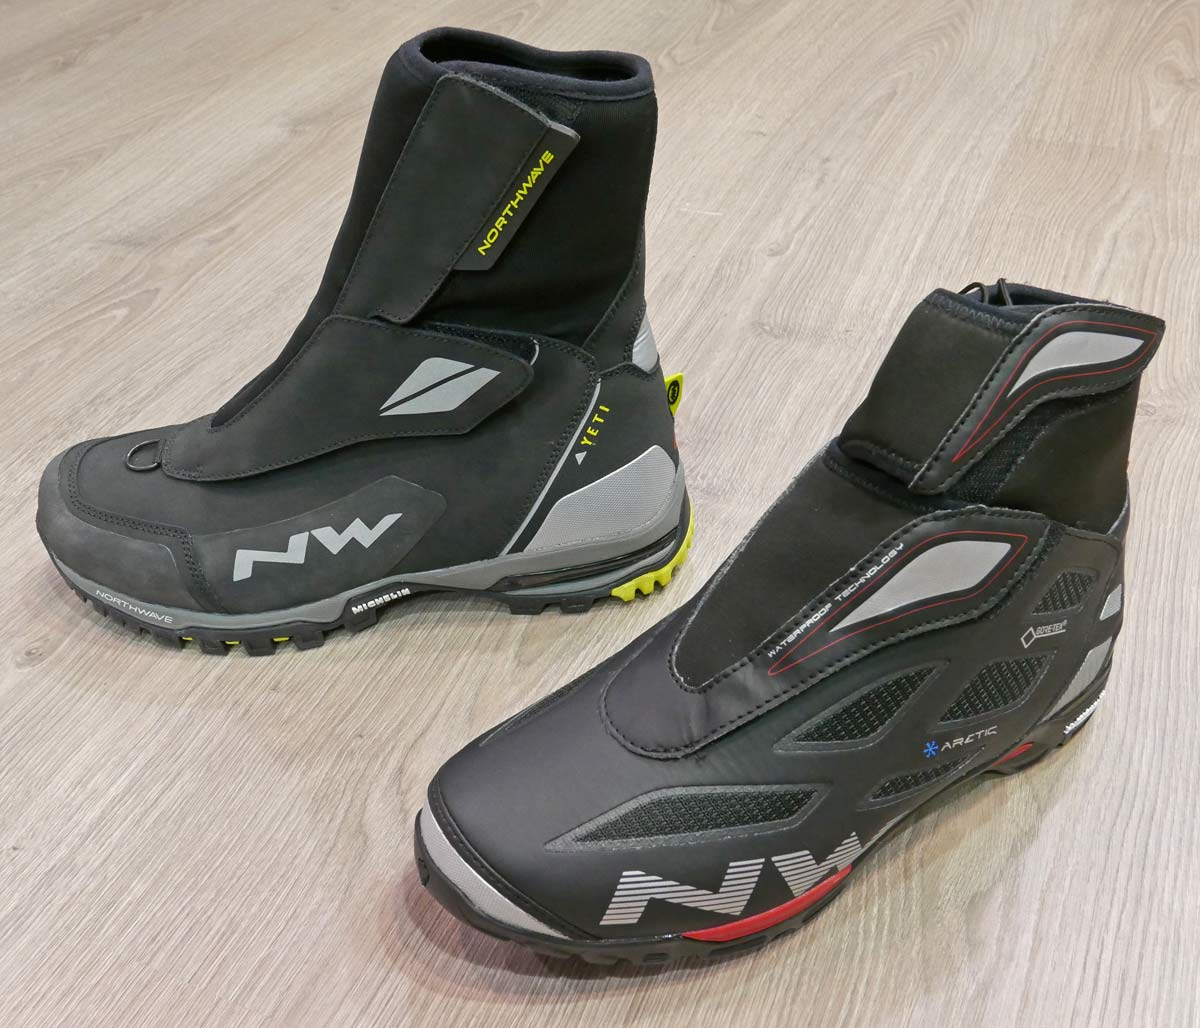 Best Overshoes For Mtb Shoes